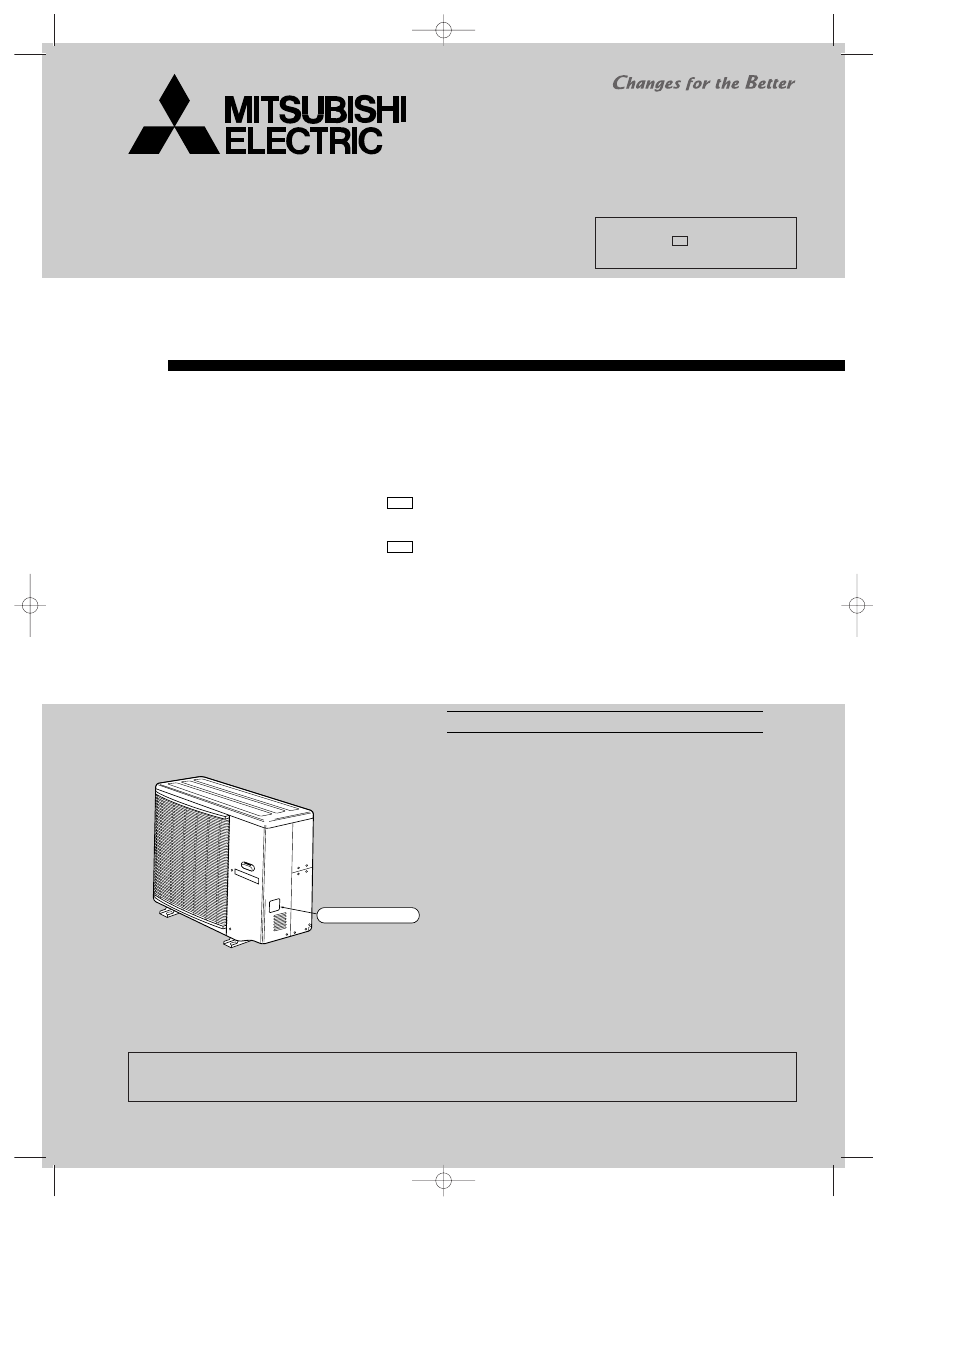 hight resolution of mitsubishi electric mxz 24uv user manual 44 pages also for mxz 24uv e2